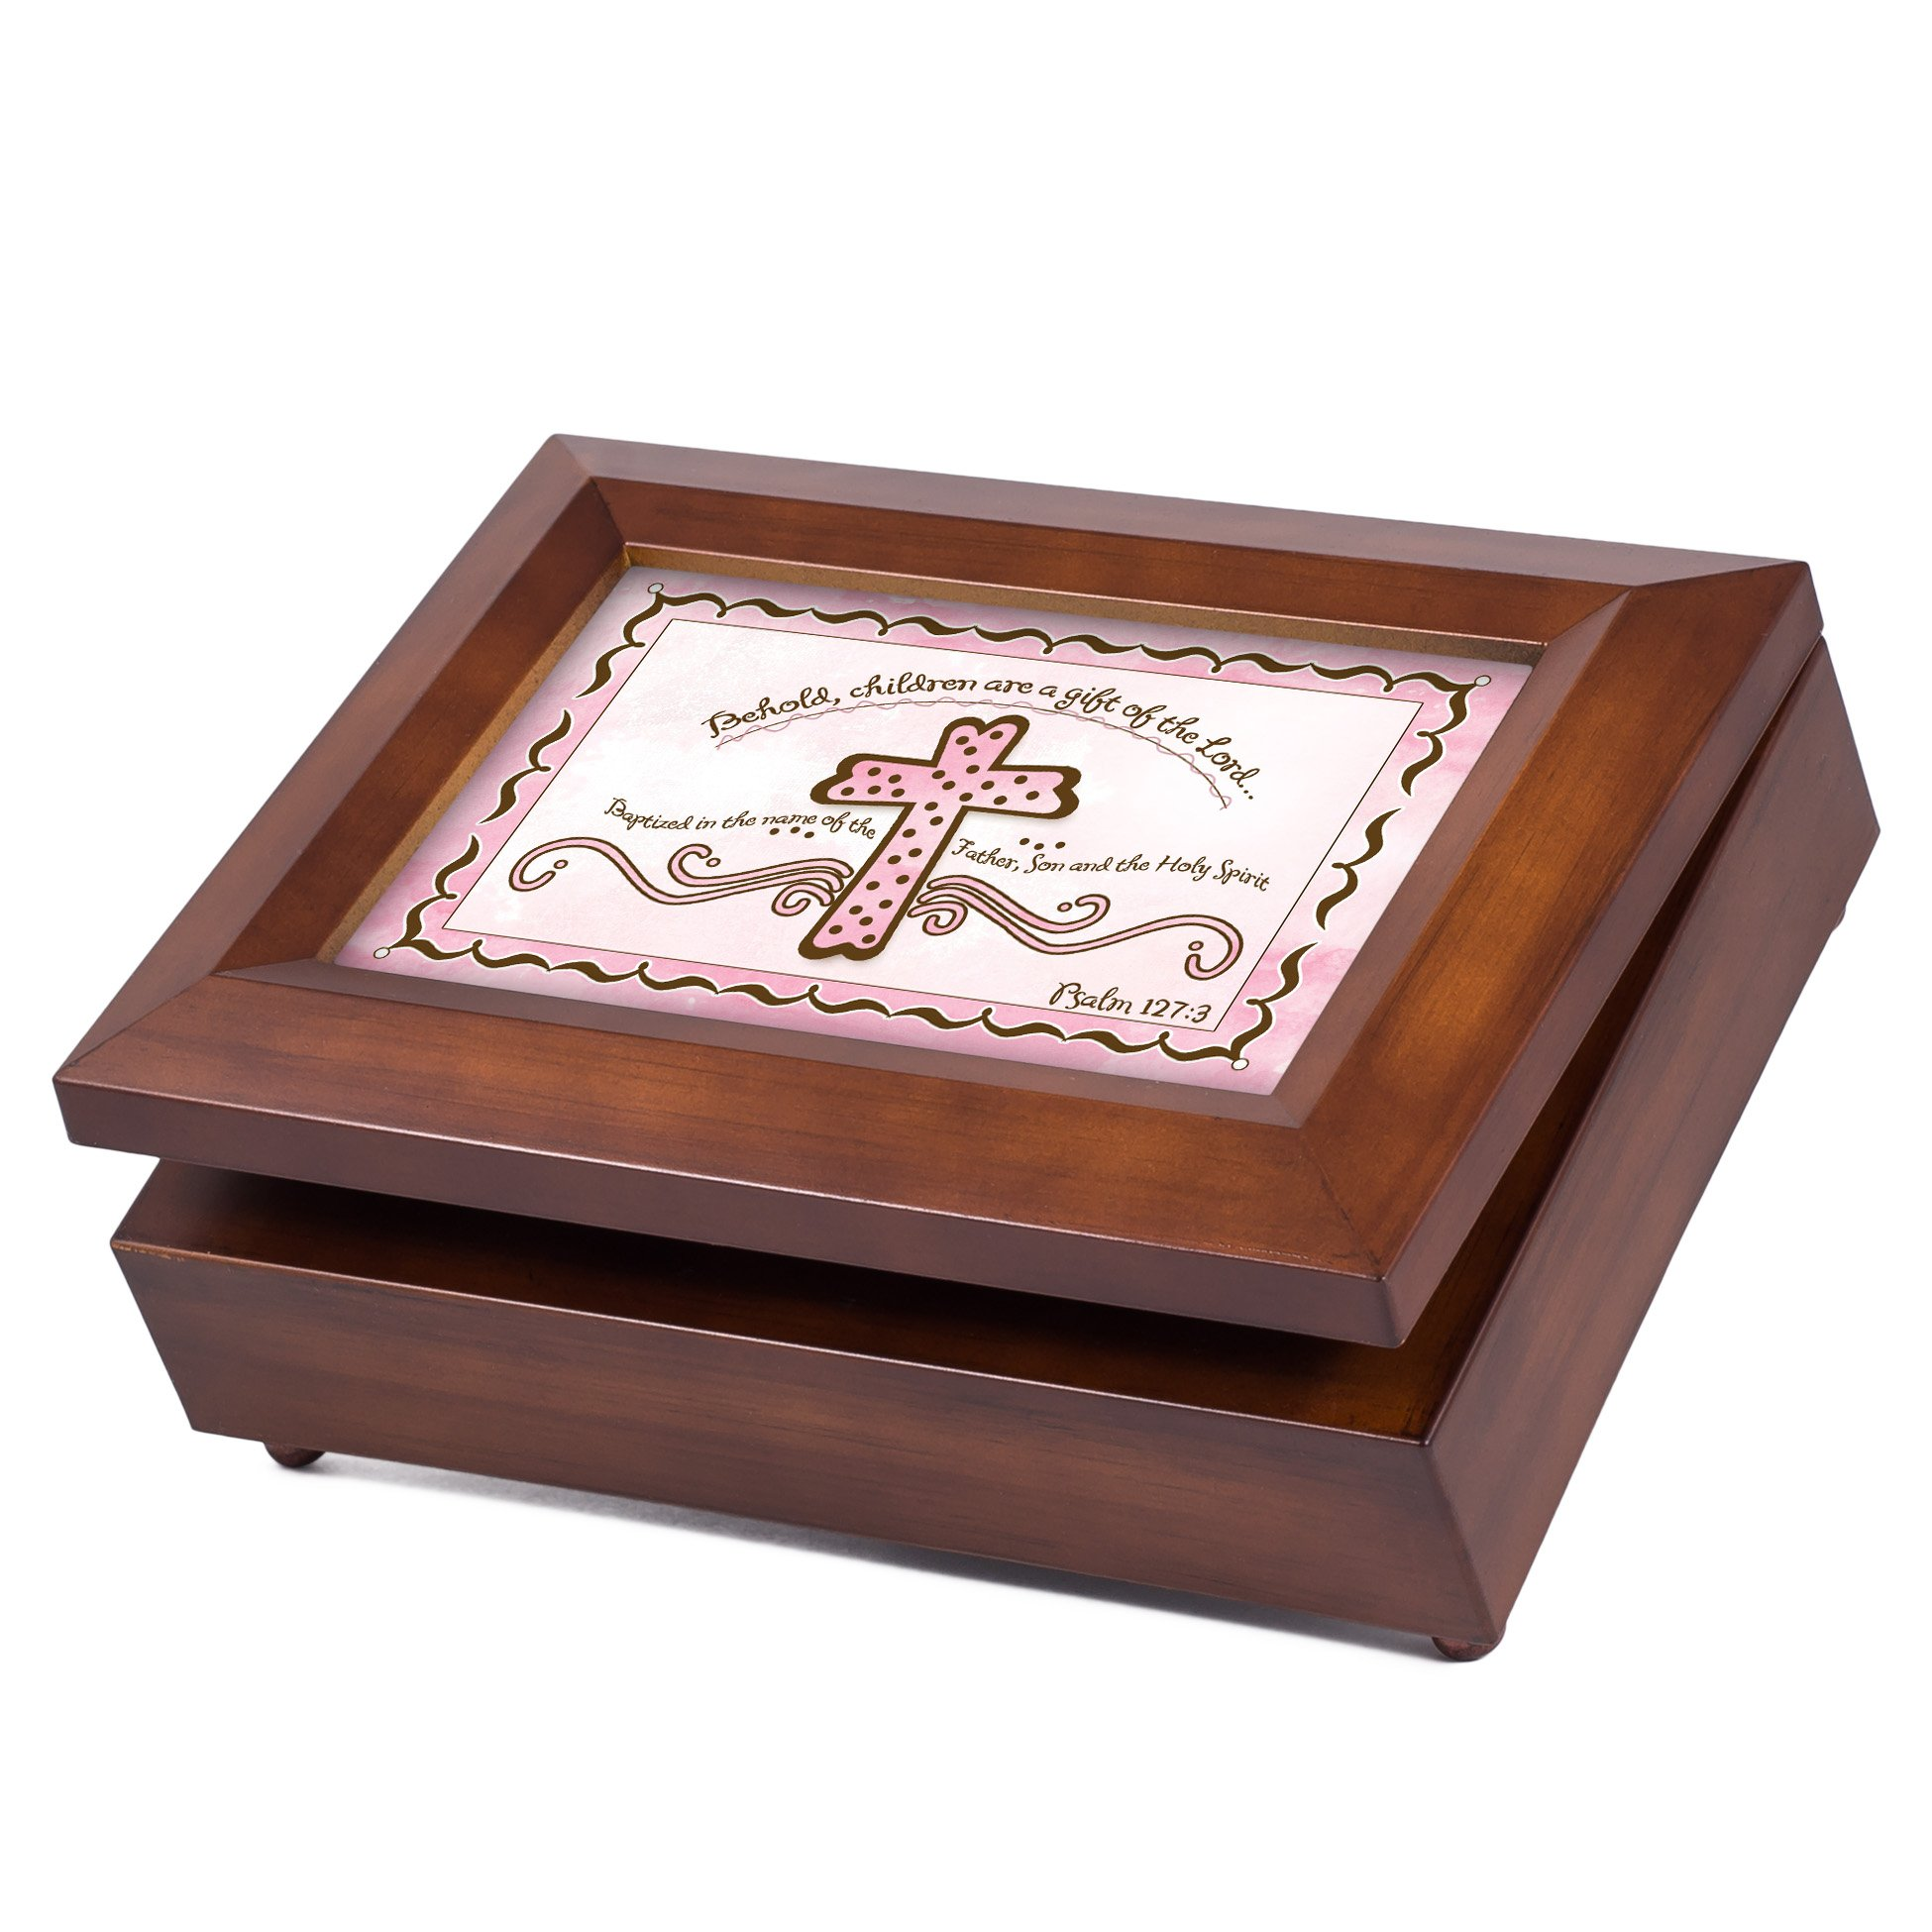 Cottage Garden Baby Girl Baptism Cross Psalm 127:3 Wood Finish Jewelry Music Box - Plays Tune You Are My Sunshine by Cottage Garden (Image #3)